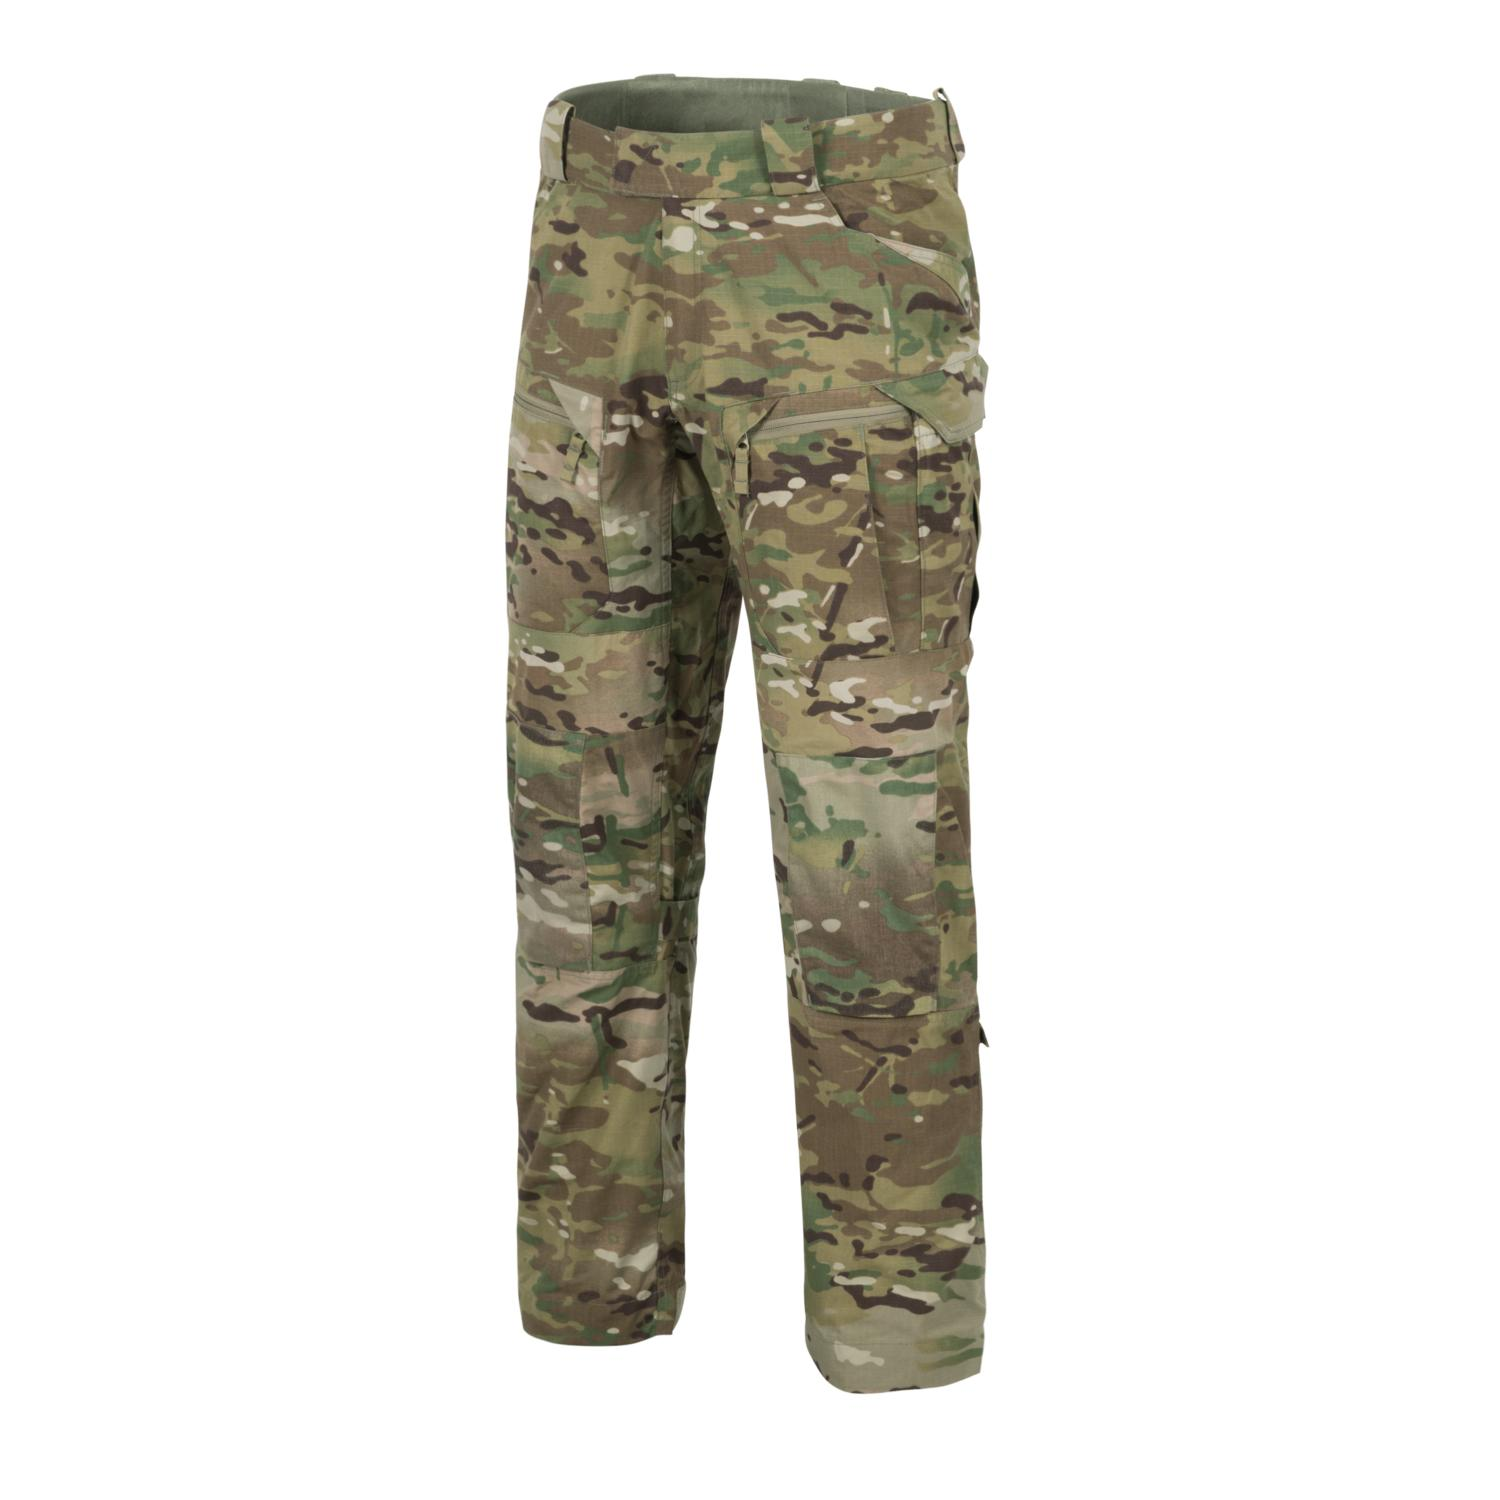 VANGUARD Combat Trousers® - Direct Action® Advanced Tactical